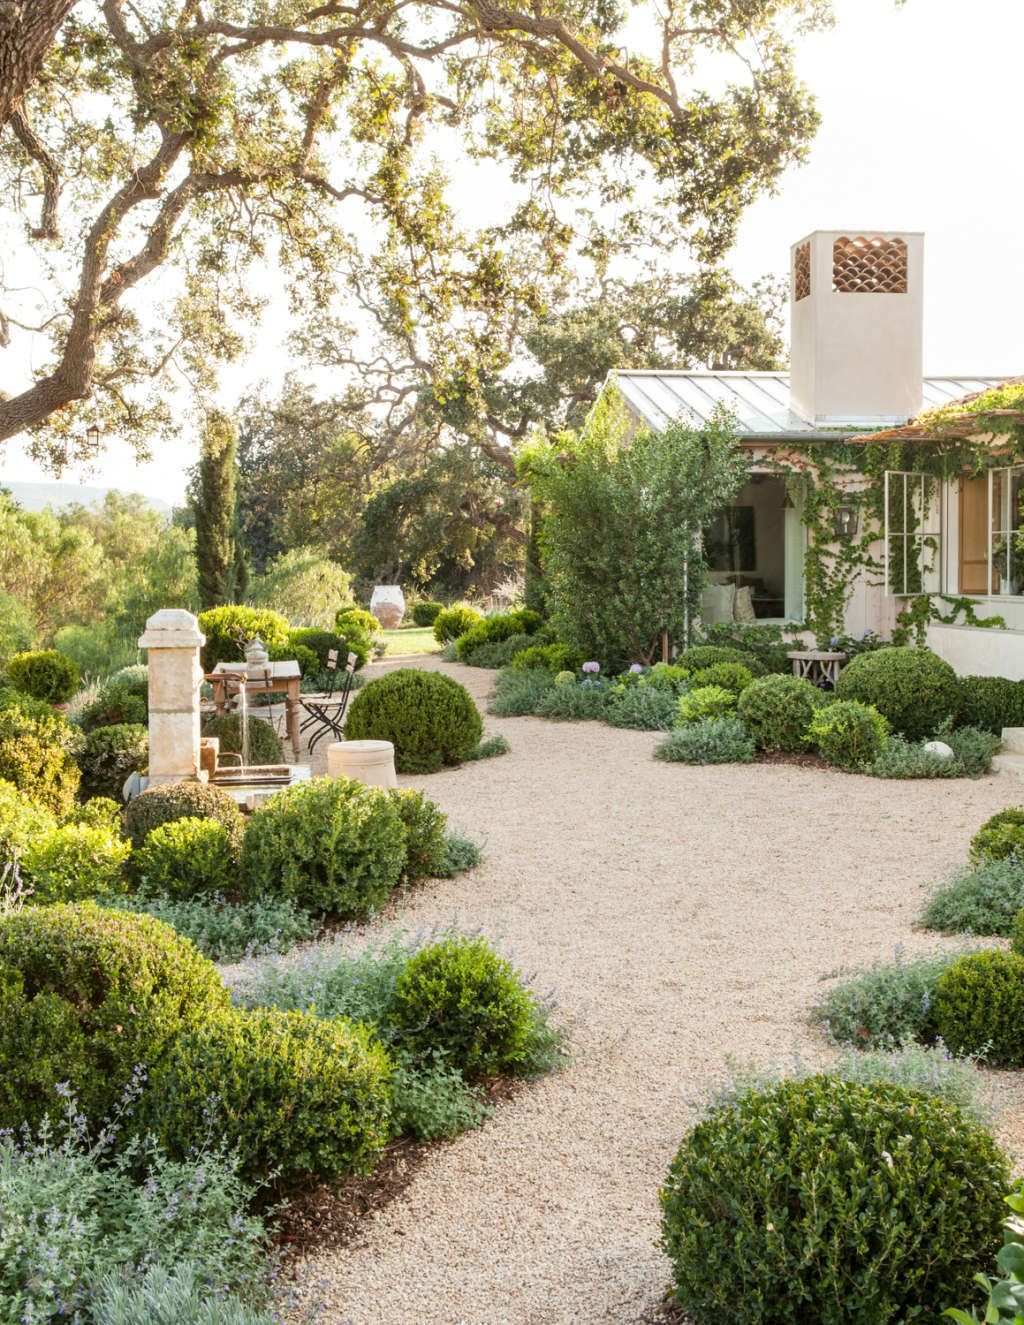 Another Look at Gravel: Chic Ways to Use It Outdoors Whether you use it to fill a yard or define a garden path, you'll love this low-maintenance look.Whether you use it to fill a yard or define a garden path, you'll love this low-maintenance look.